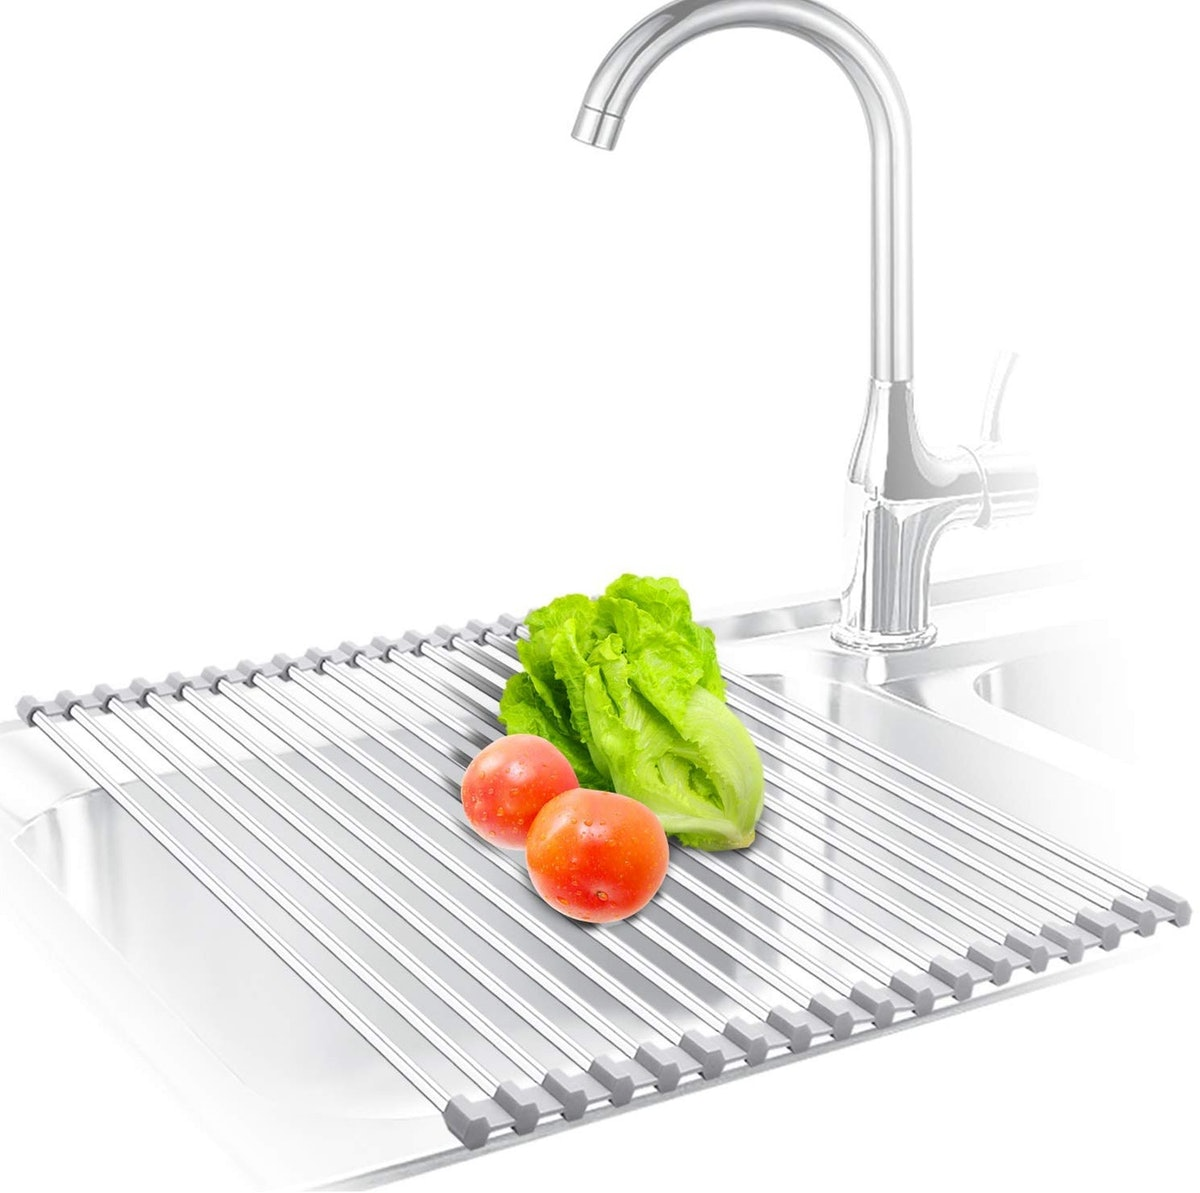 KIBEE Stainless Steel Roll Up Over The Sink Drainer